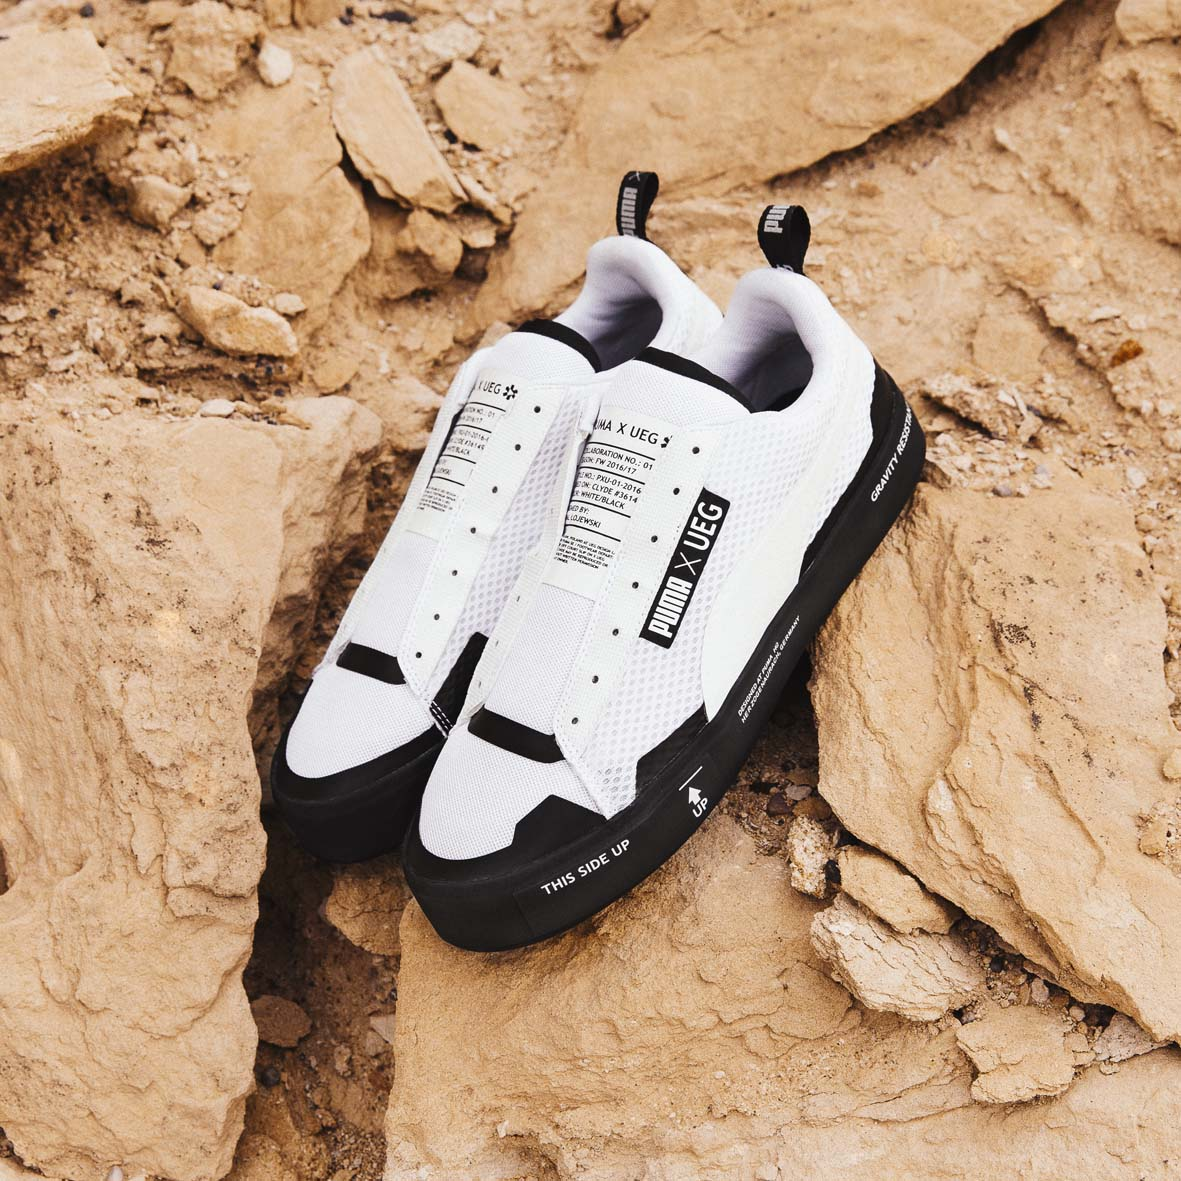 PUMA & UEG Launch Debut Collection For AW16 [SneakPeak] 16AW BTL SP SELECT UEG 22lo